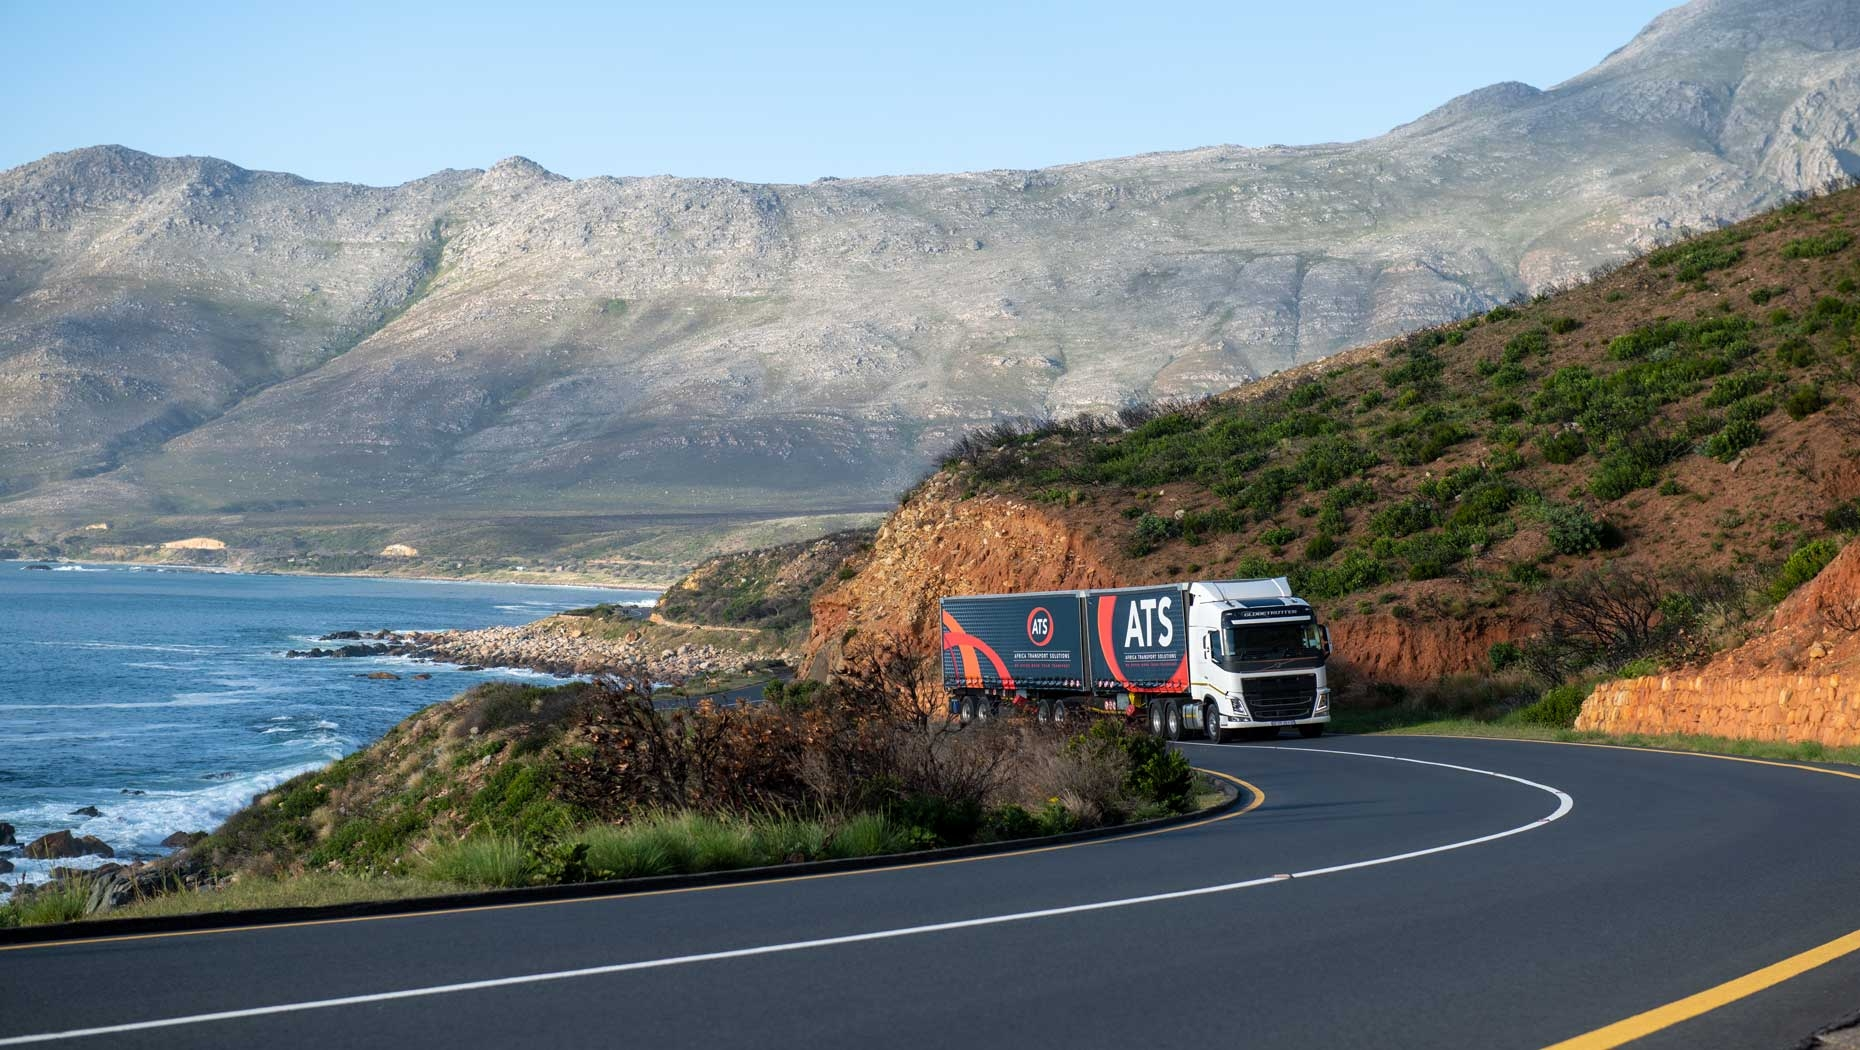 ATS was given the opportunity to trial Volvo Torque Assist, a new function included in Volvo Trucks' upgraded D13 diesel engines for Euro 3-5 markets.